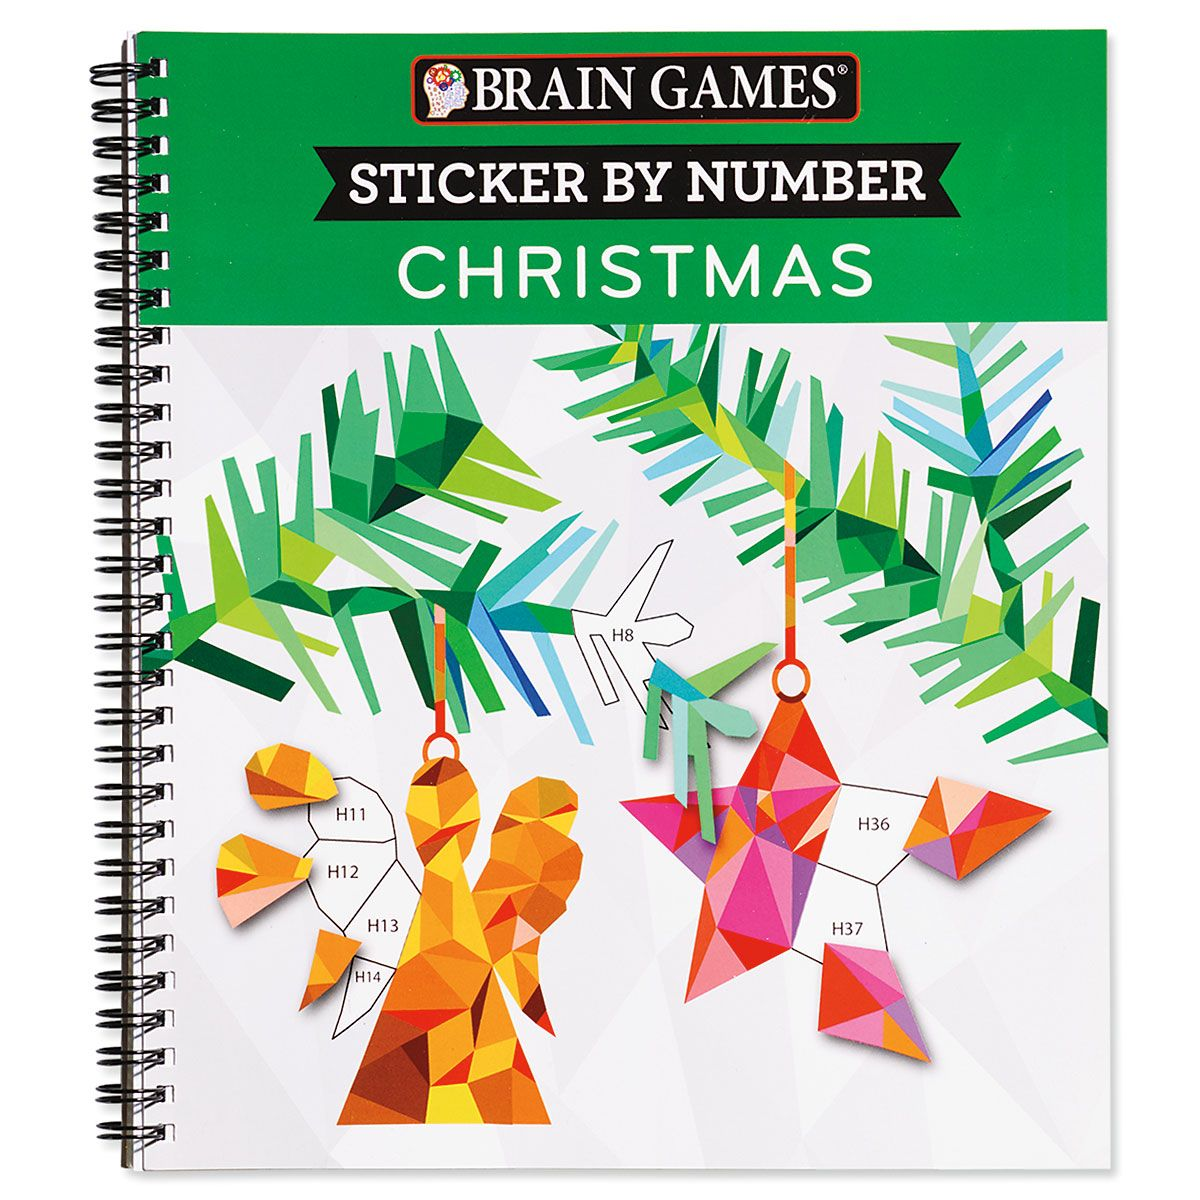 Sticker by Number Christmas Book Brain Games®